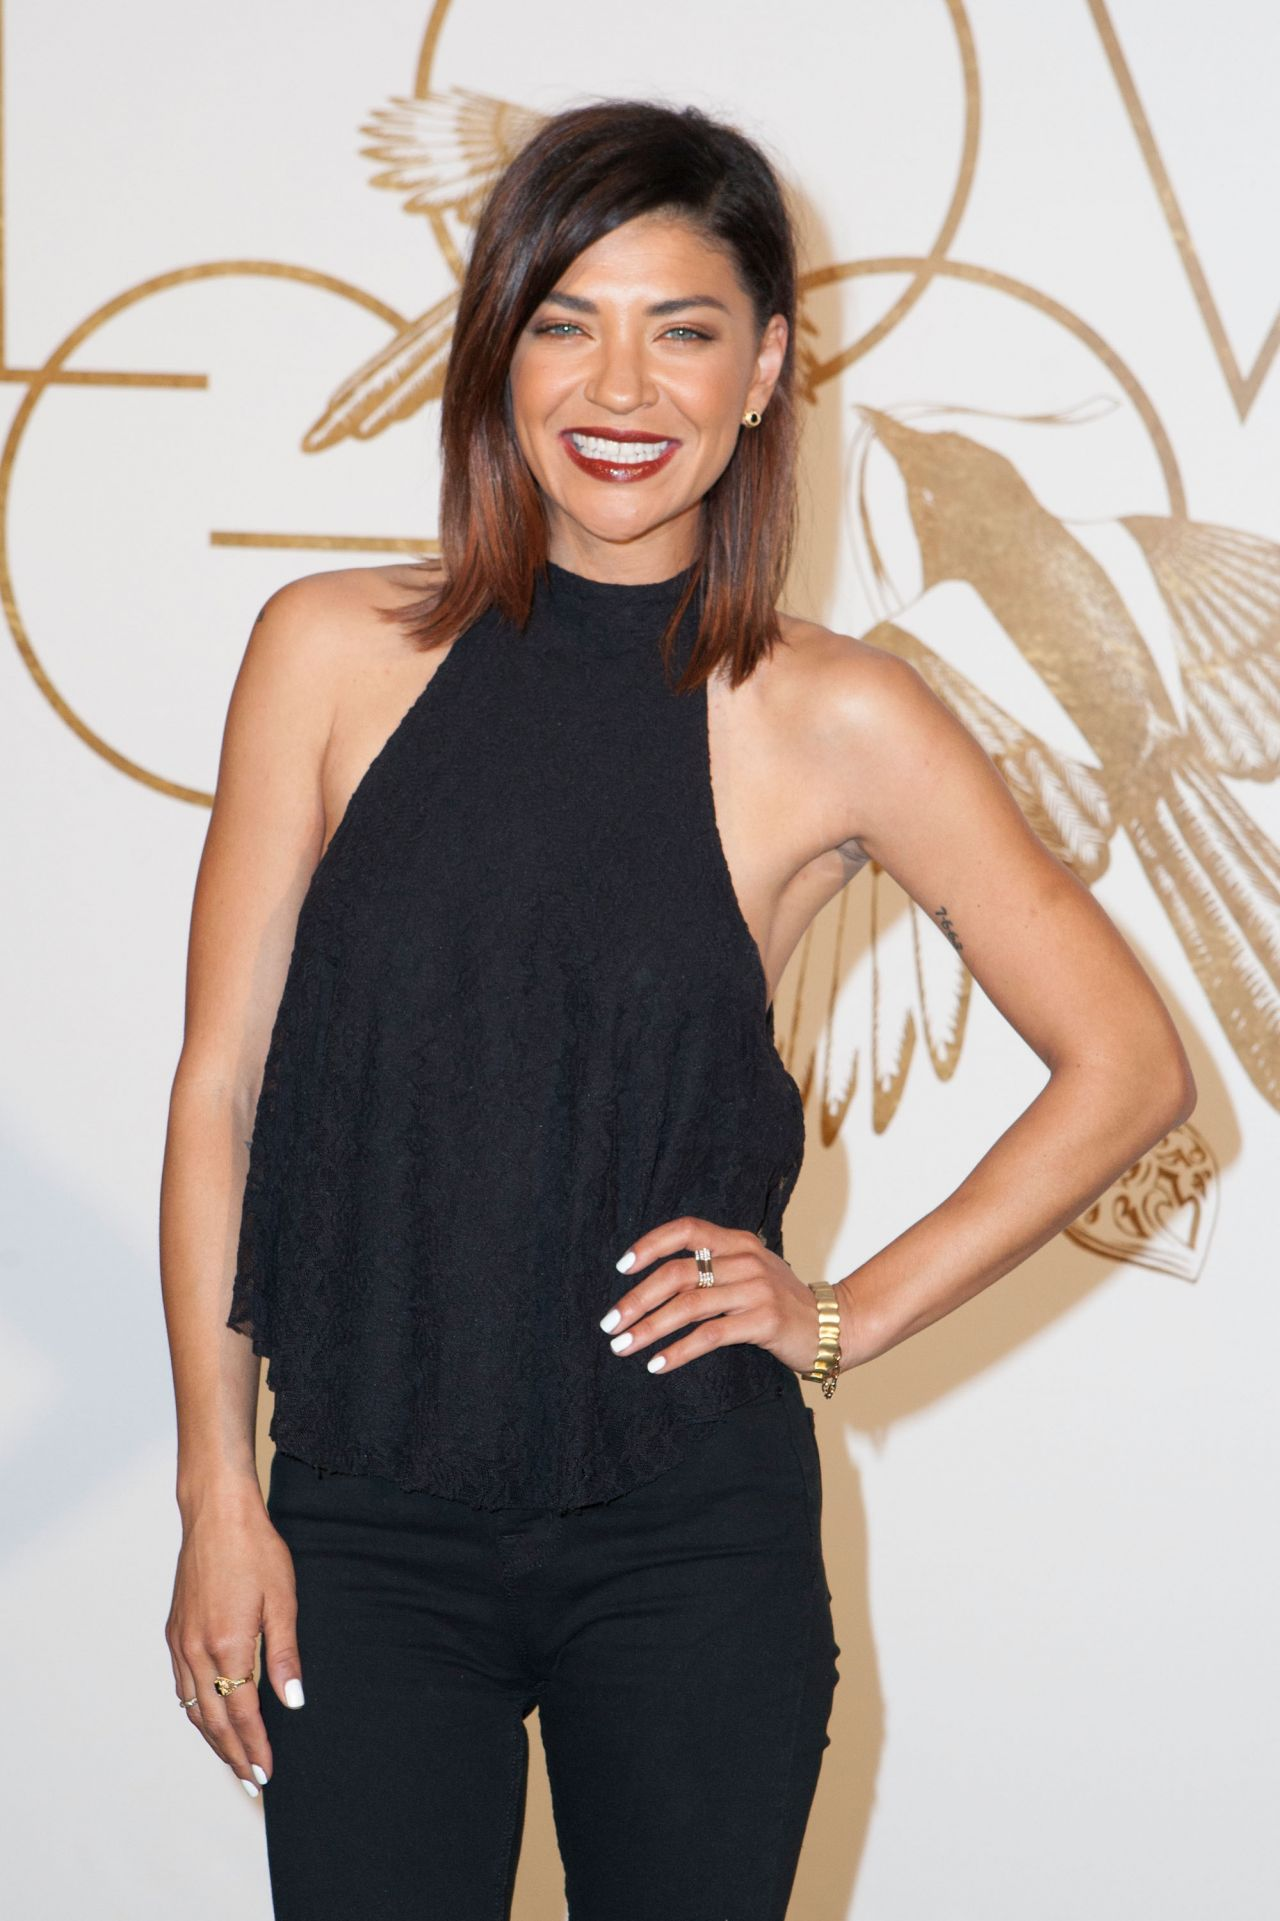 Jessica Szohr - LoveGold Cocktail Party 2014